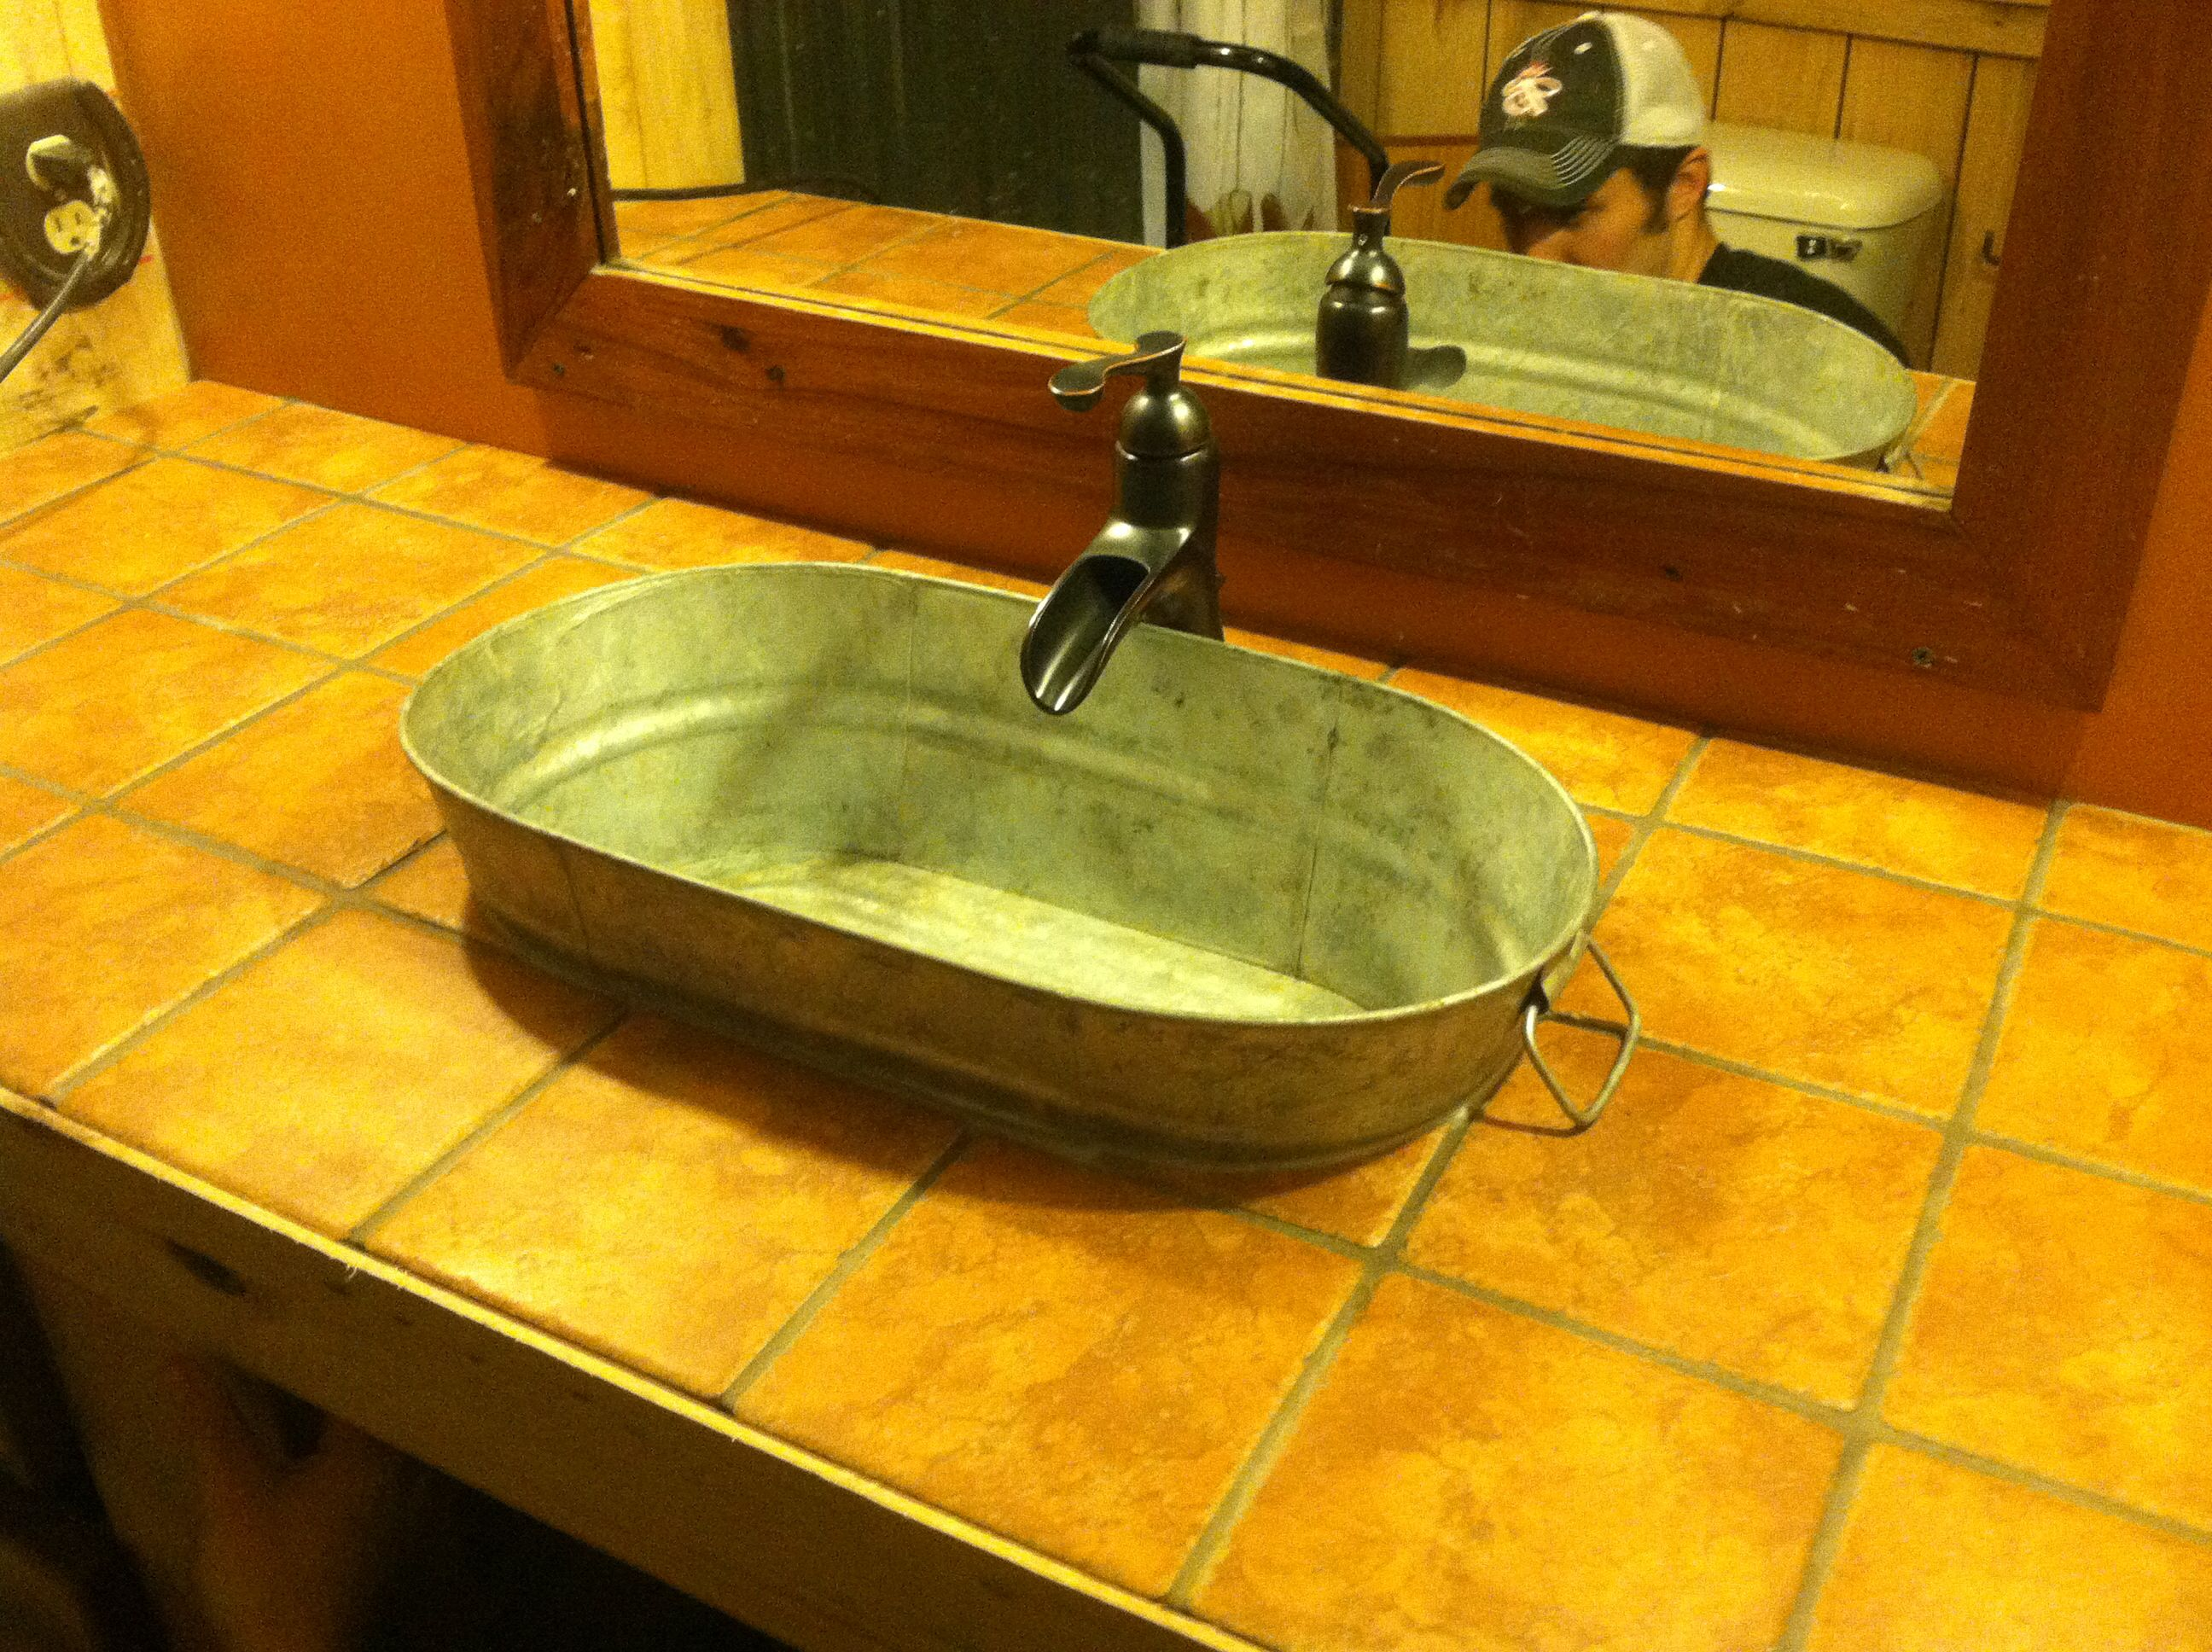 Attirant Our New Rustic Western Bathroom Sink U0026 Faucet.